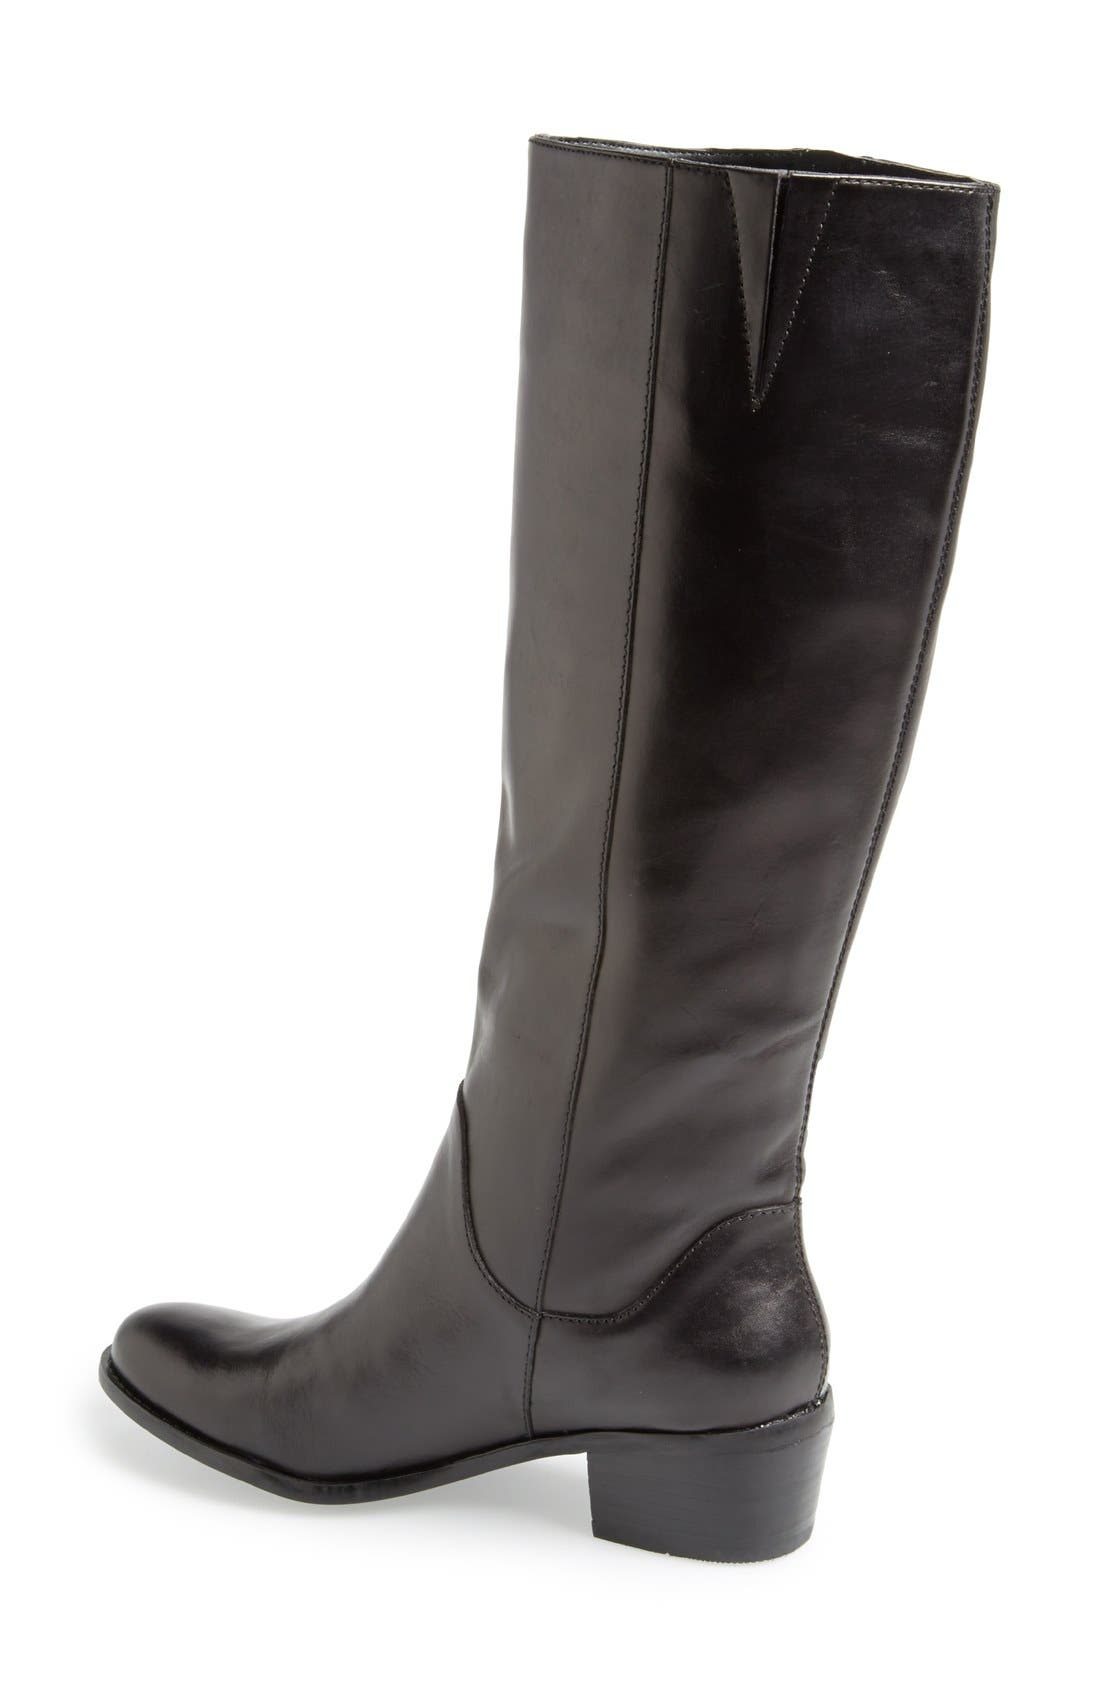 Alternate Image 2  - Sole Society 'Bria' Leather Knee High Boot (Women)